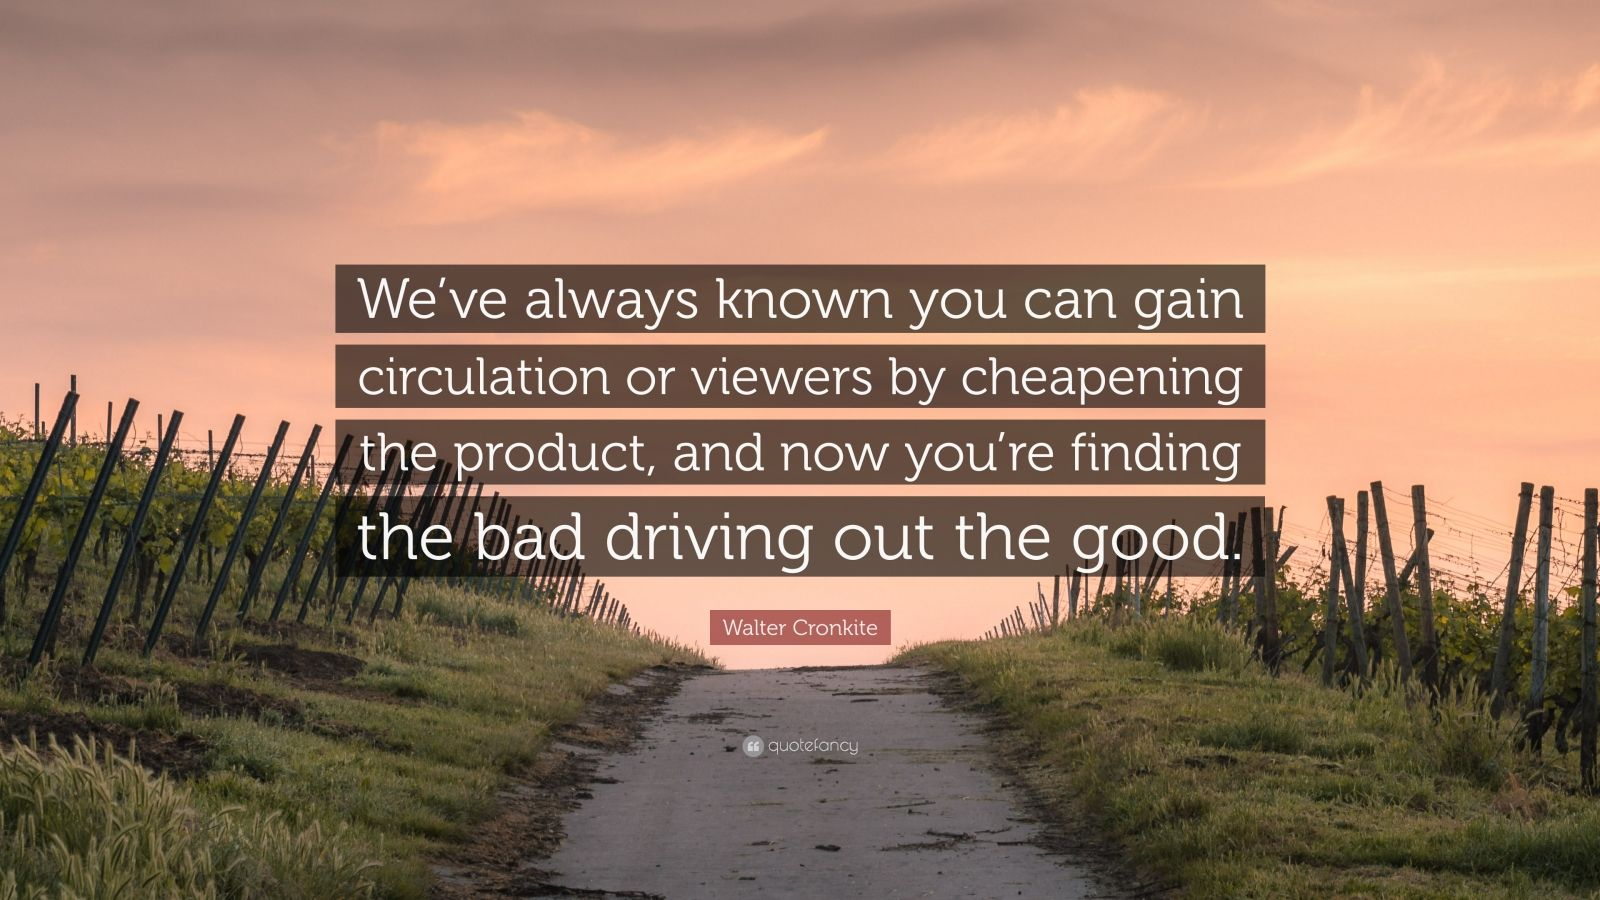 """Walter Cronkite Quote: """"We've always known you can gain circulation or viewers by cheapening the product, and now you're finding the bad driving out the good."""""""